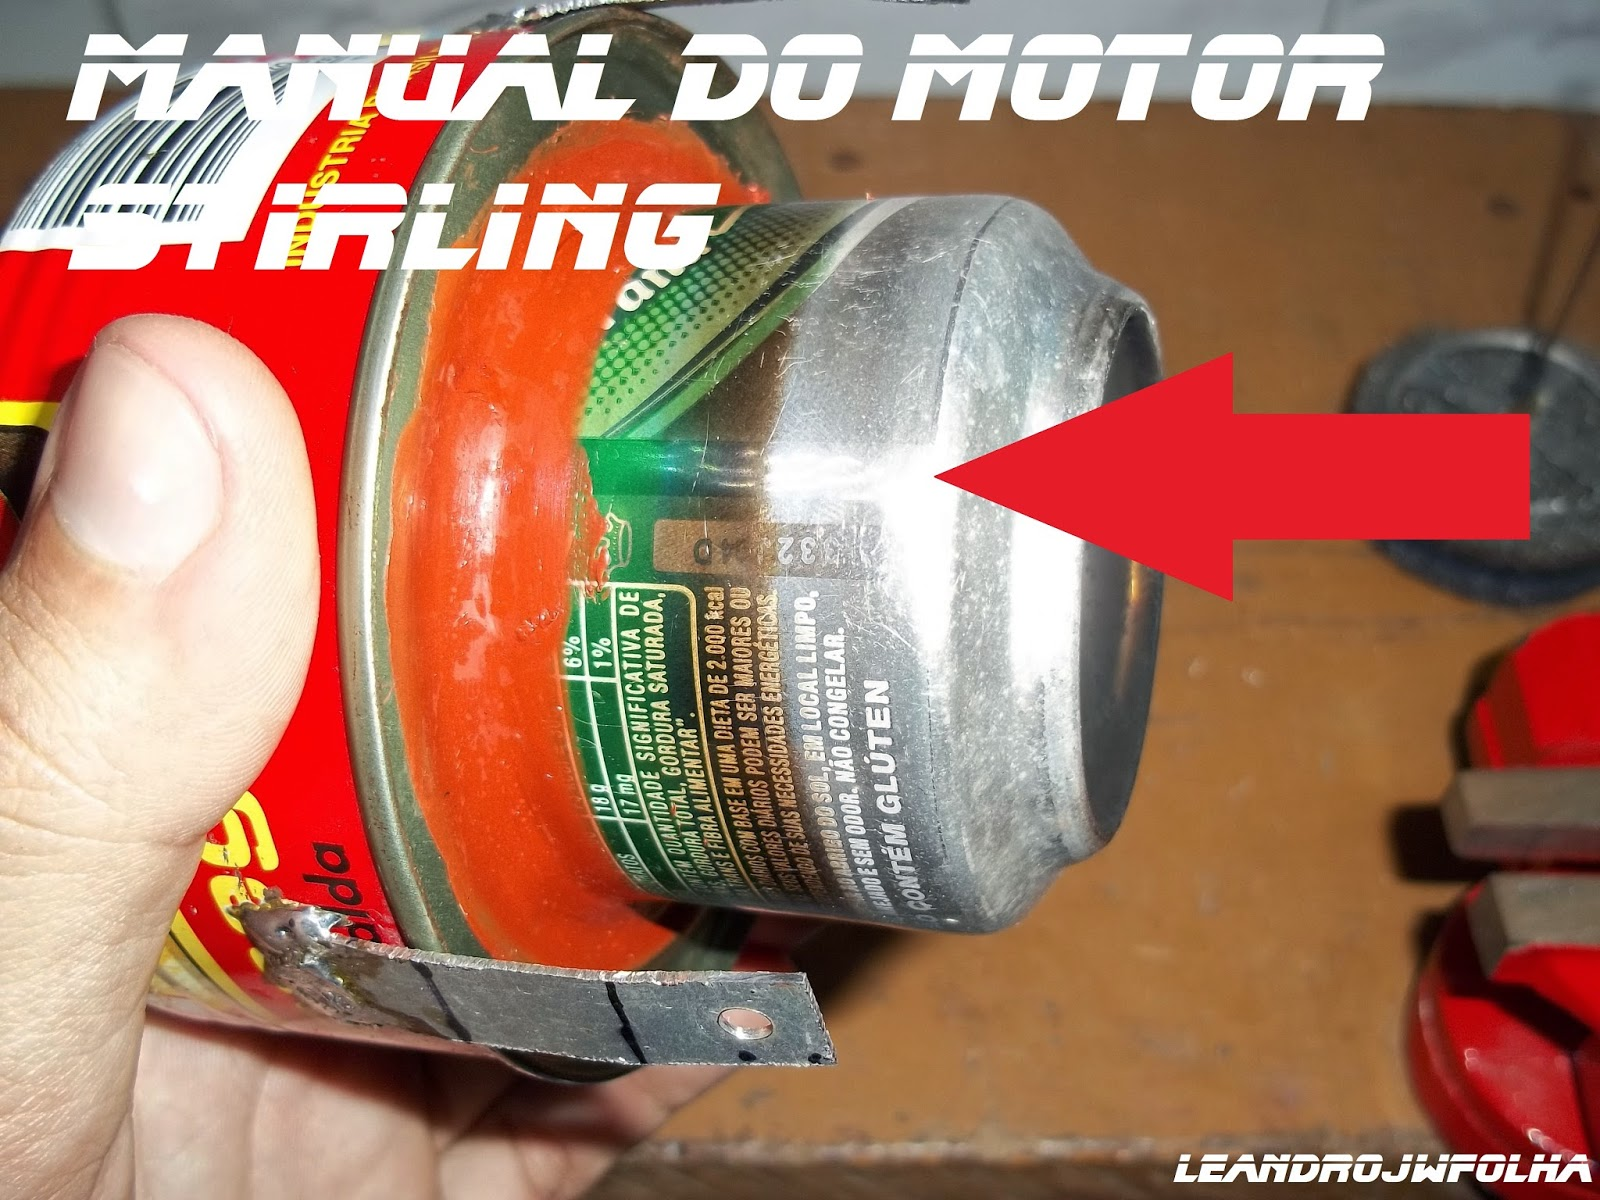 Manual do motor Stirling, cilindro quente